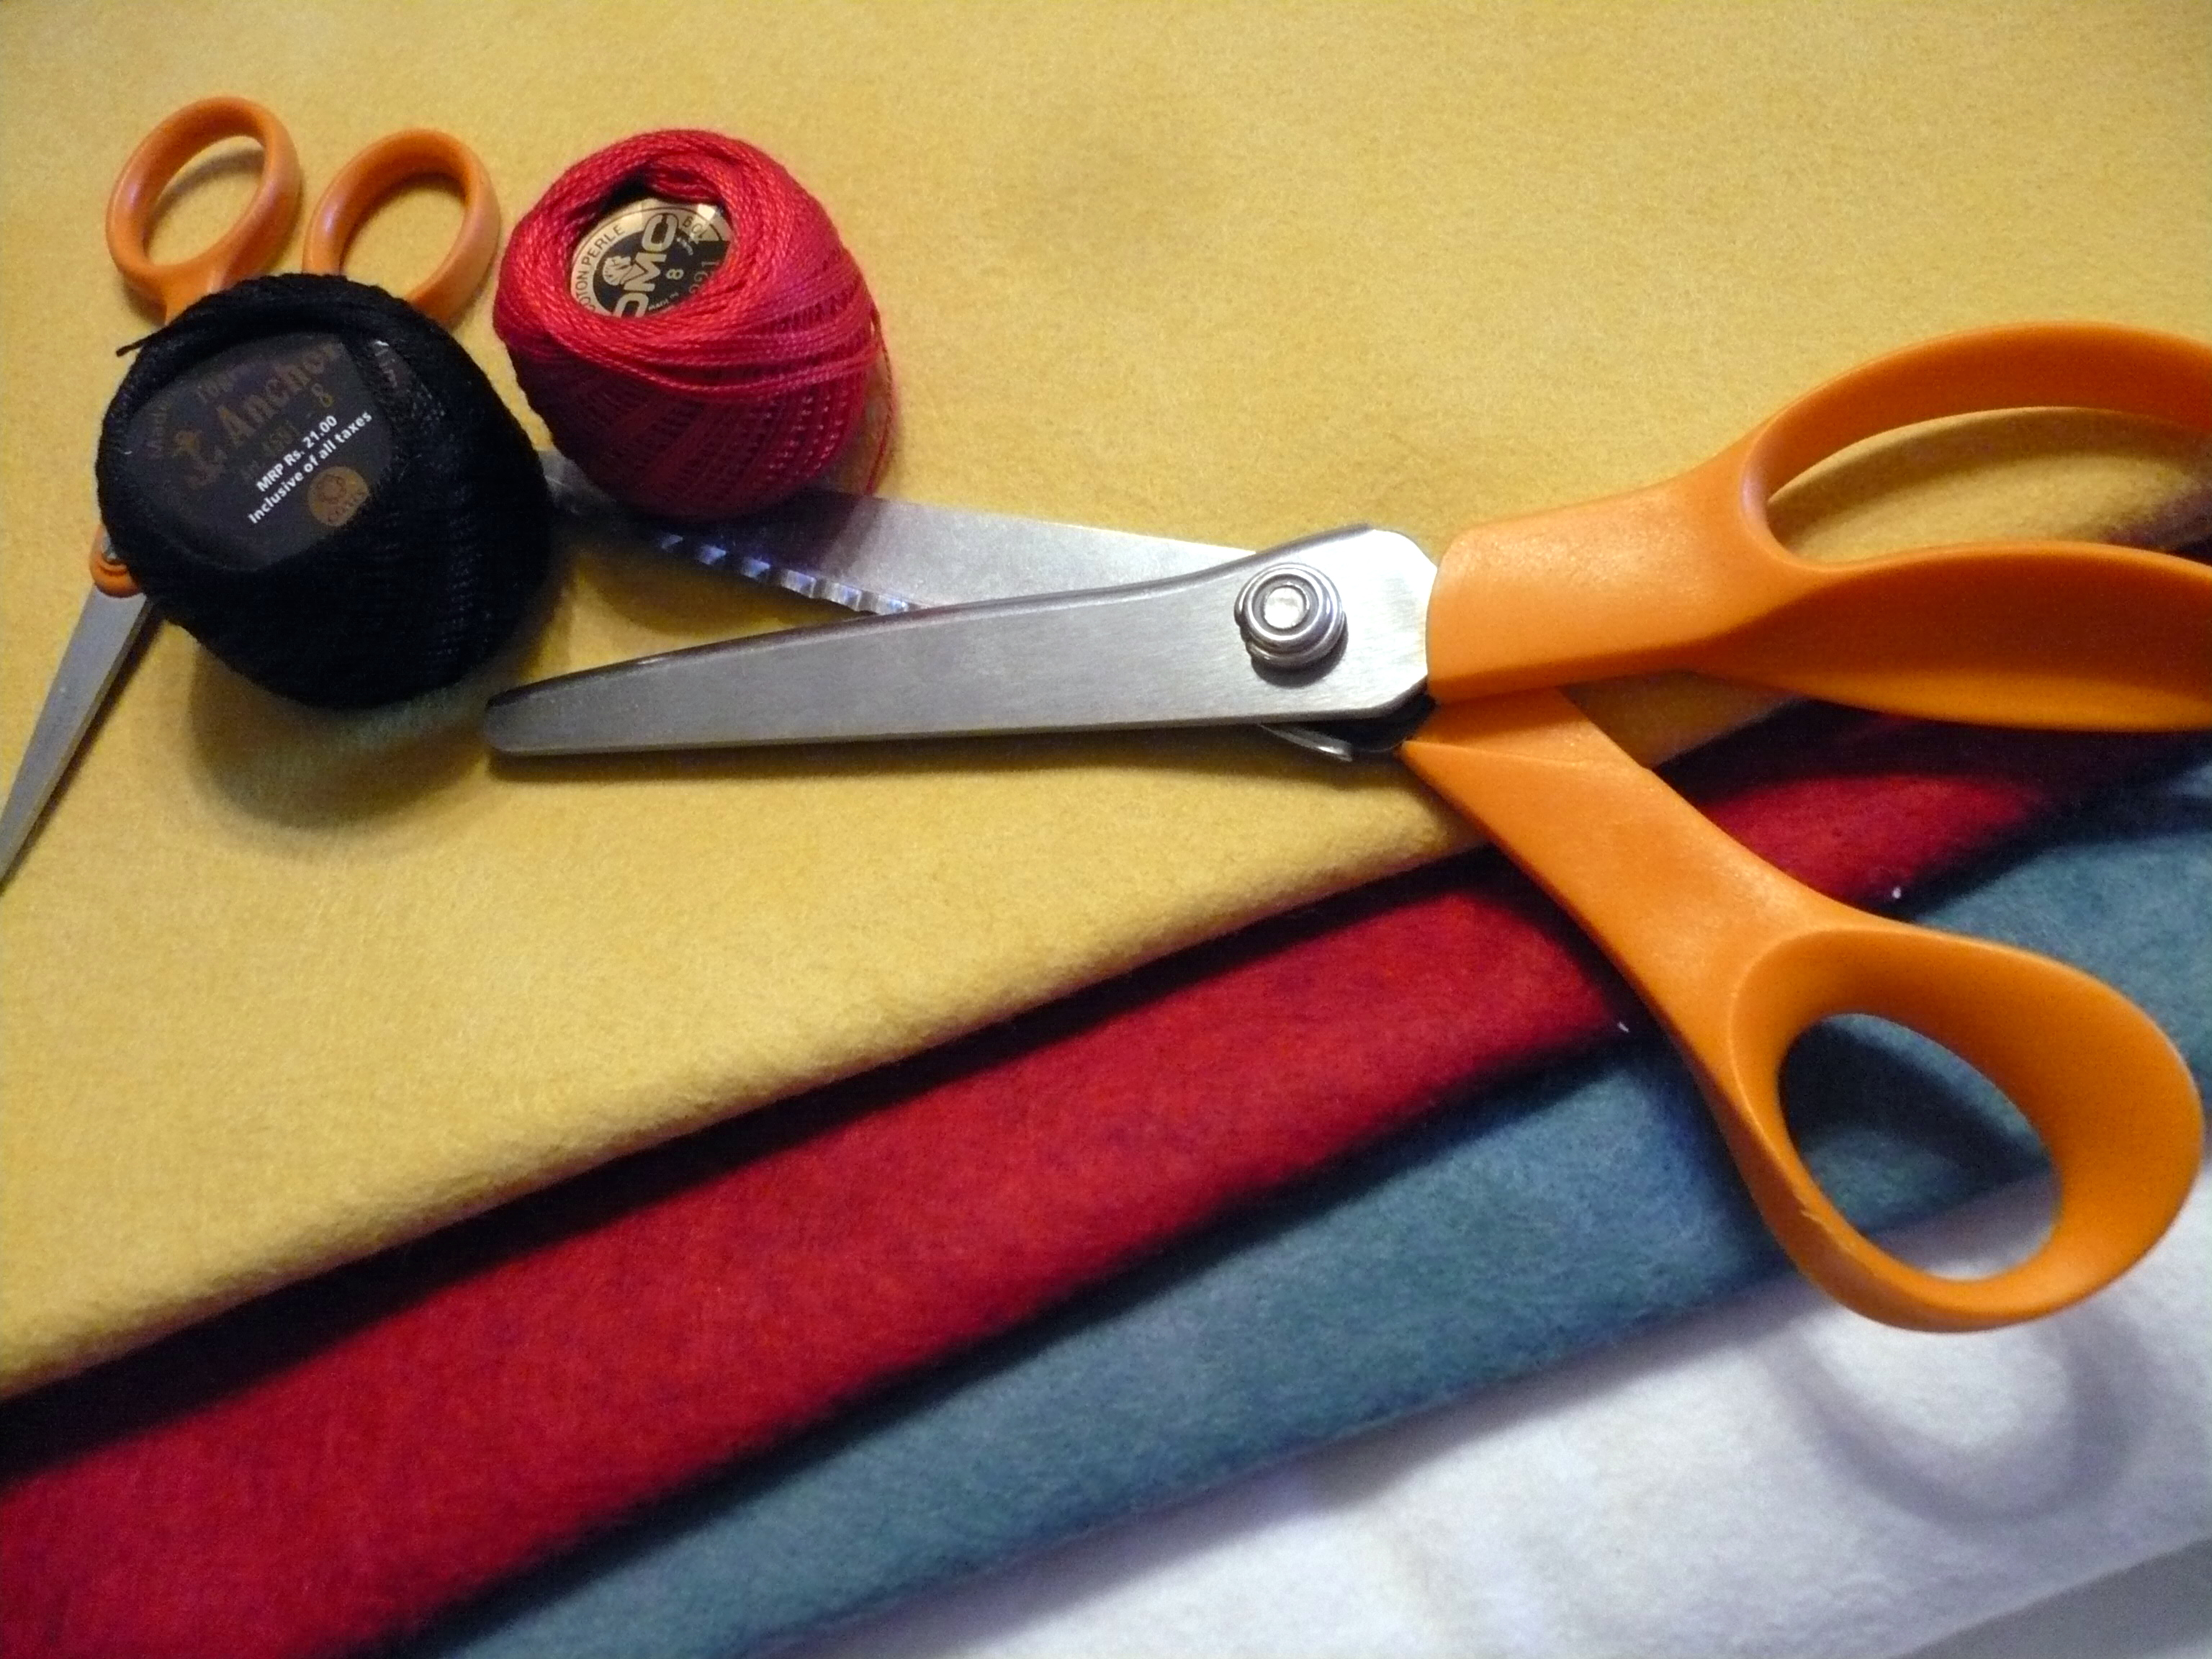 felt, thread & scissors